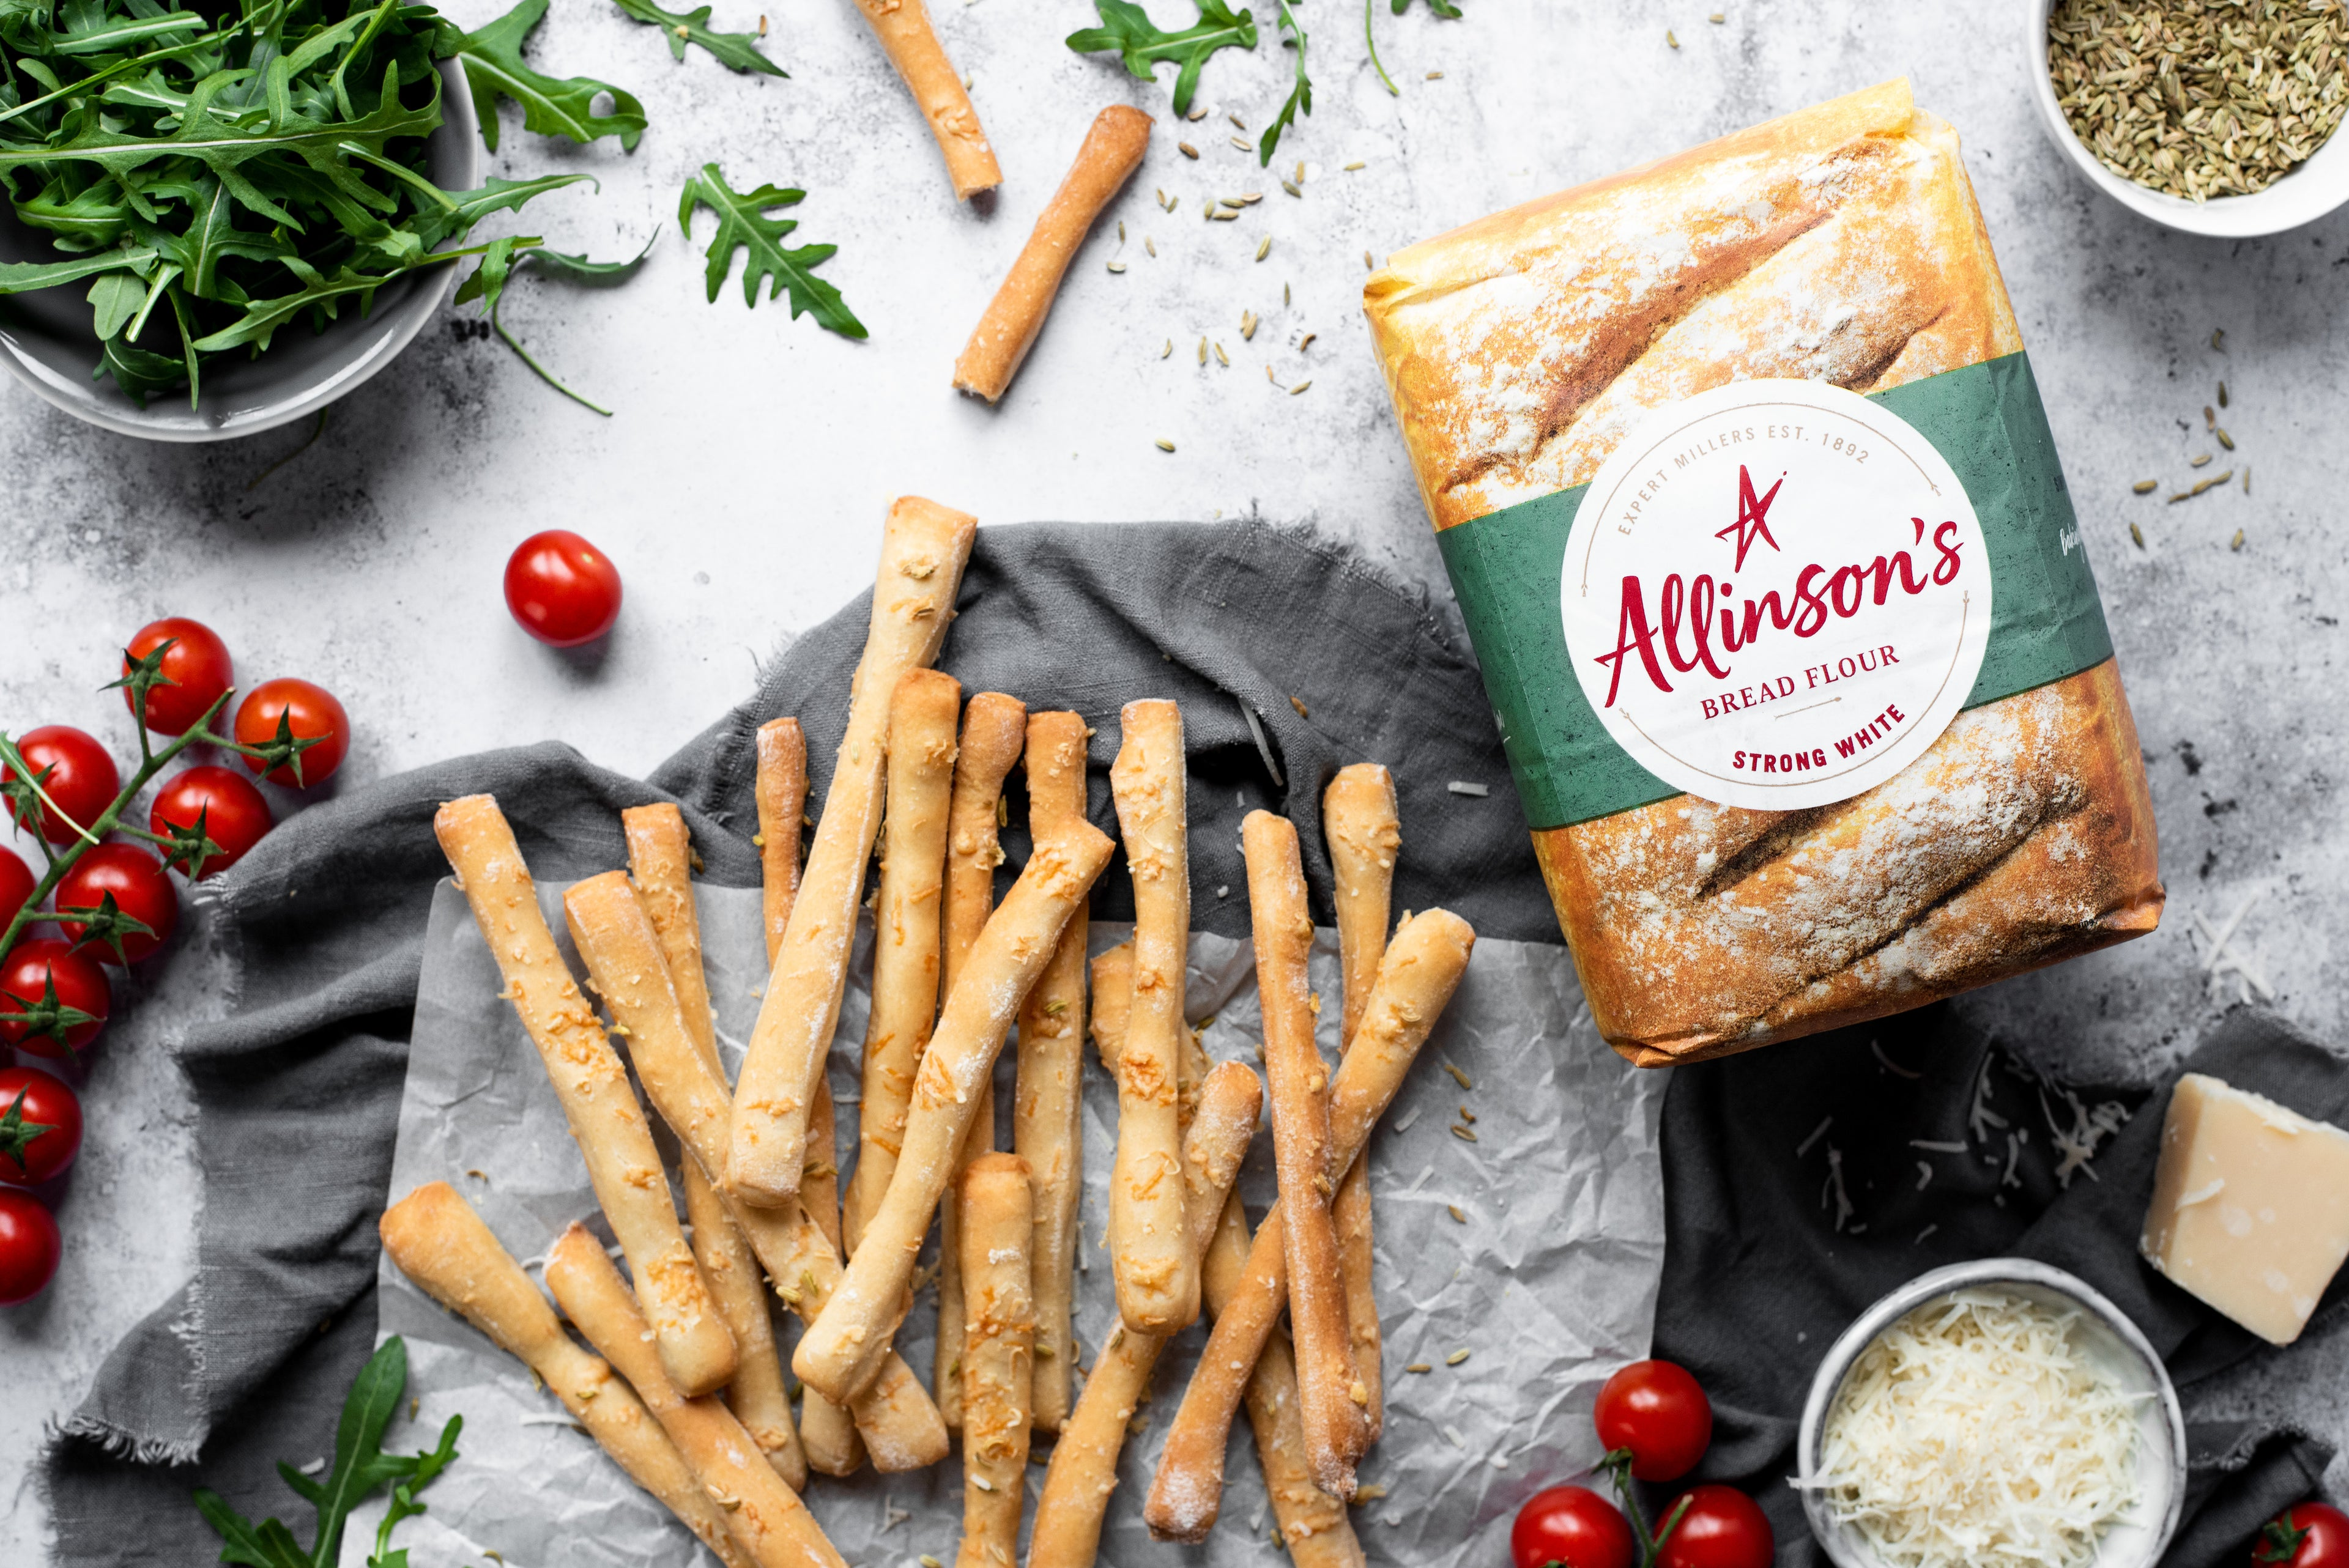 Allinsons-Bread-Sticks-FULL-RES-3.jpg